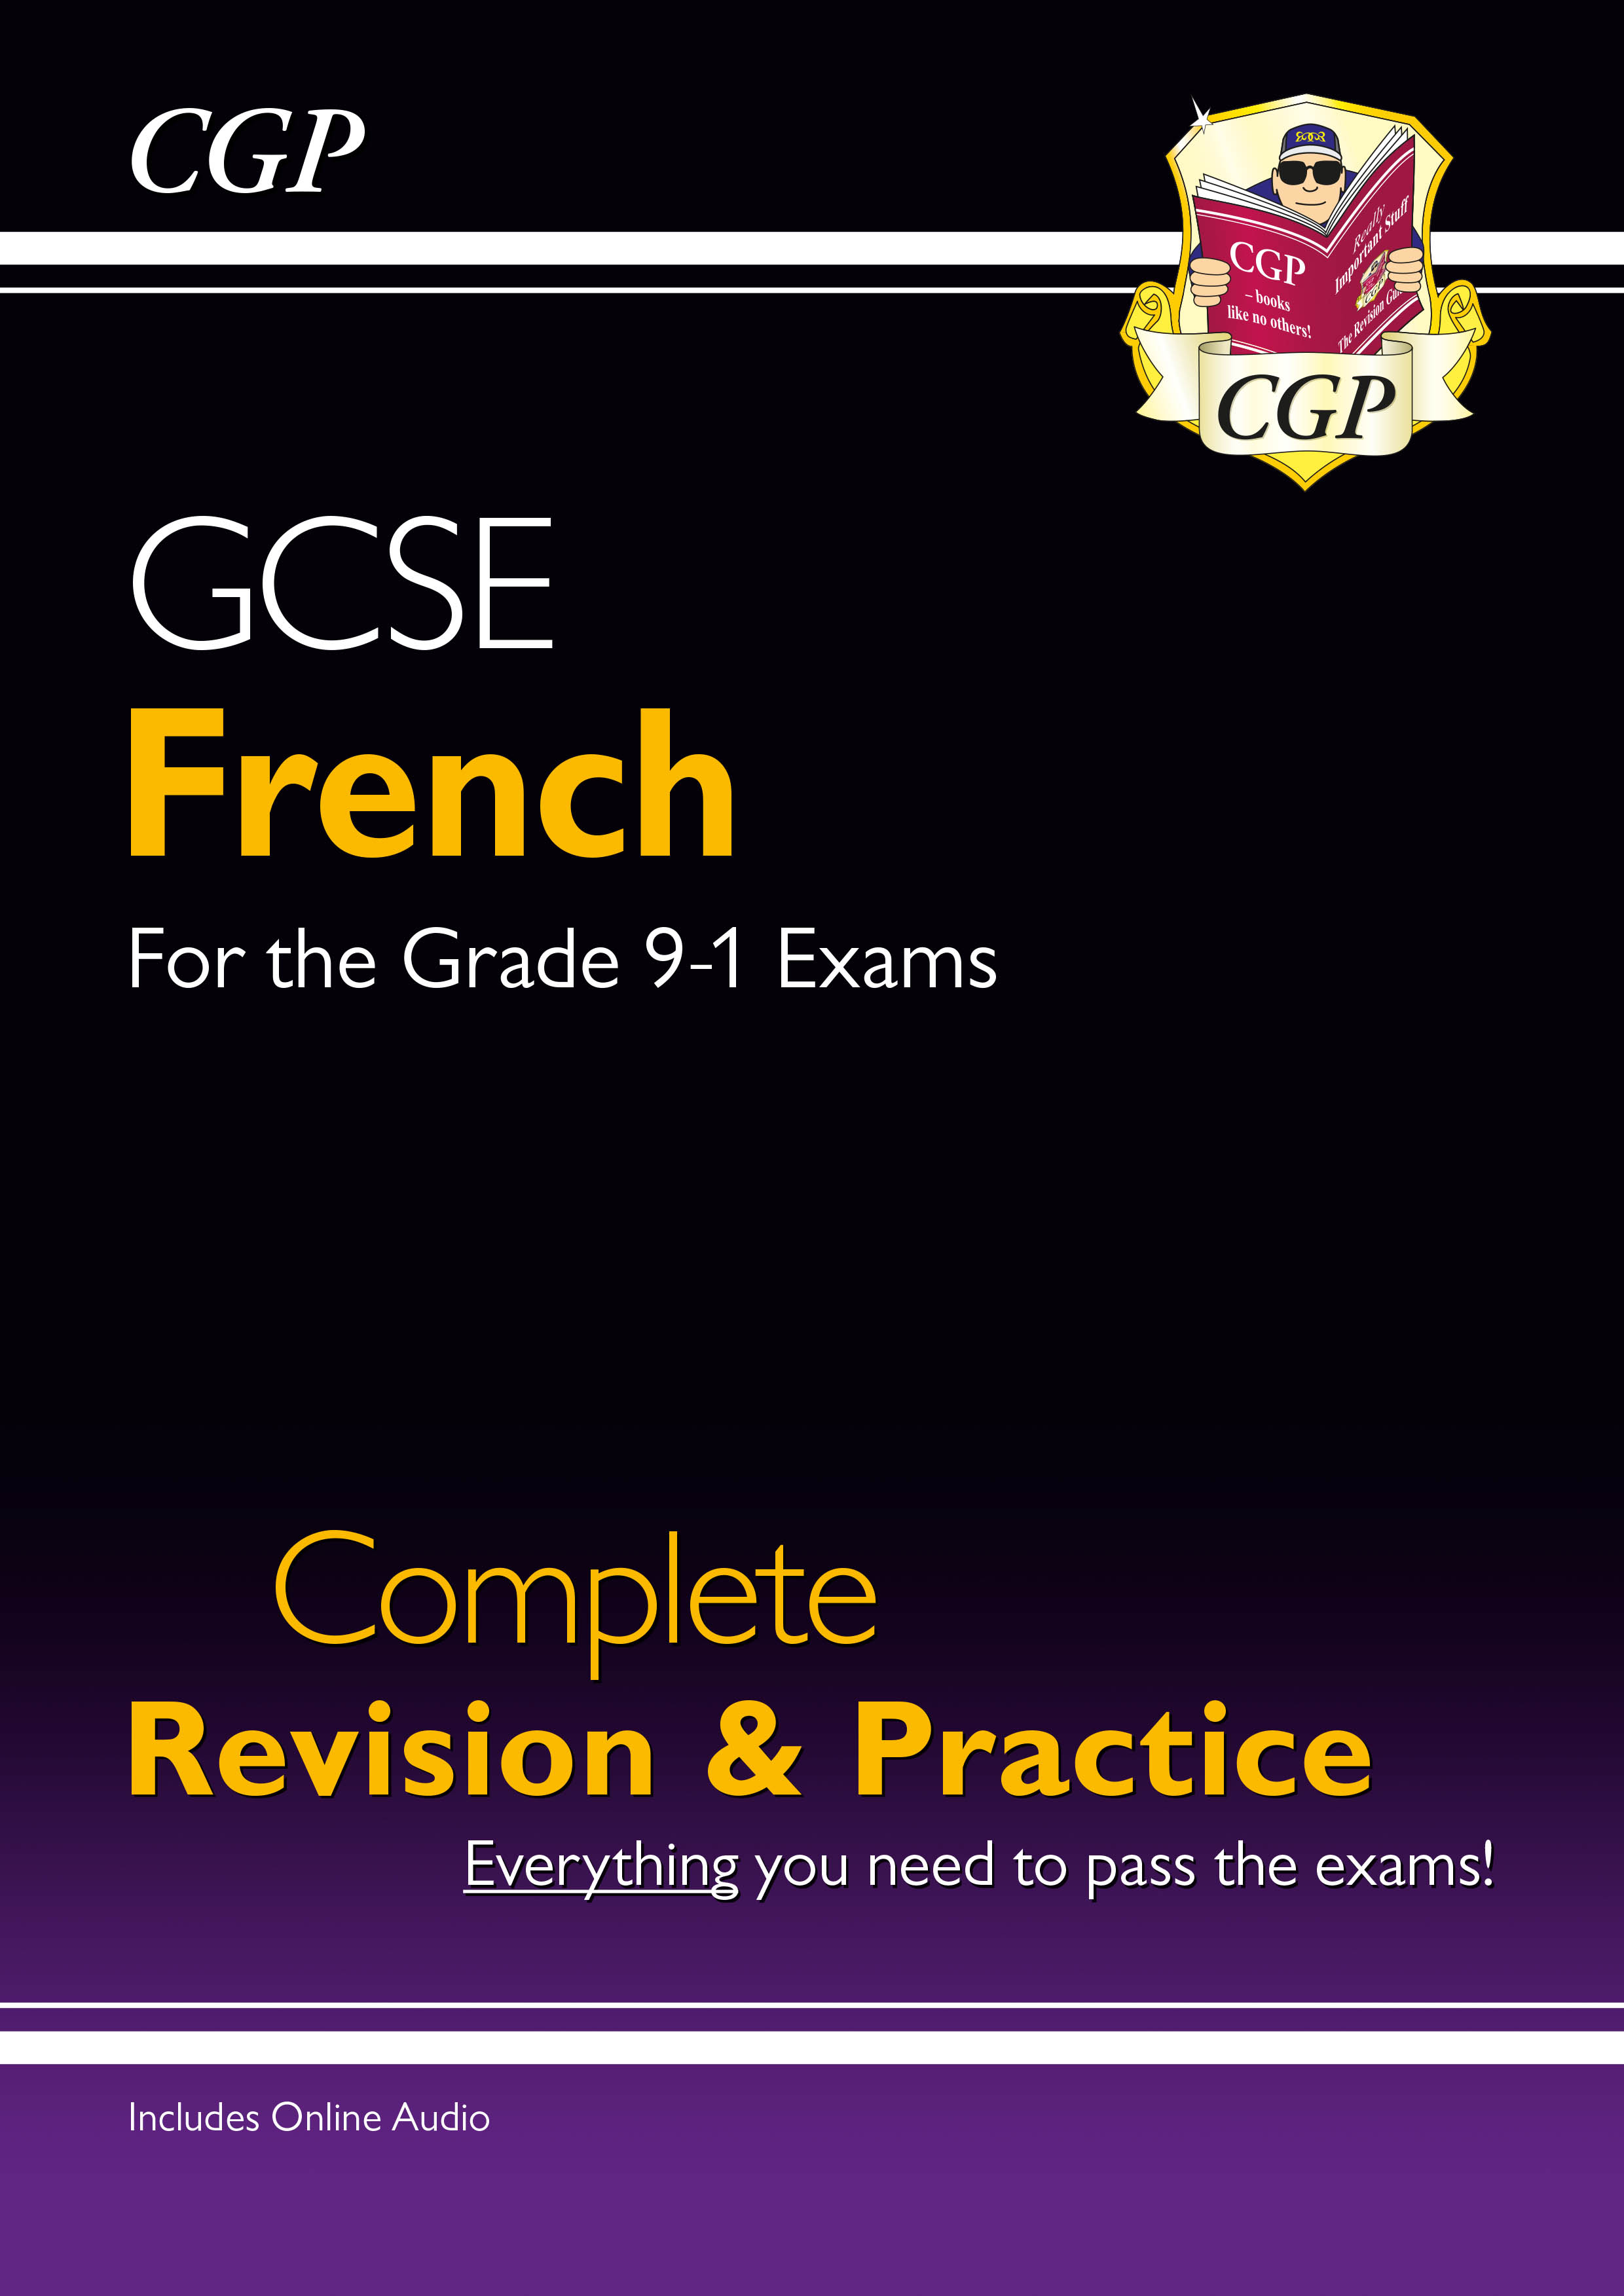 FHS44DK - New GCSE French Complete Revision & Practice - Grade 9-1 Course